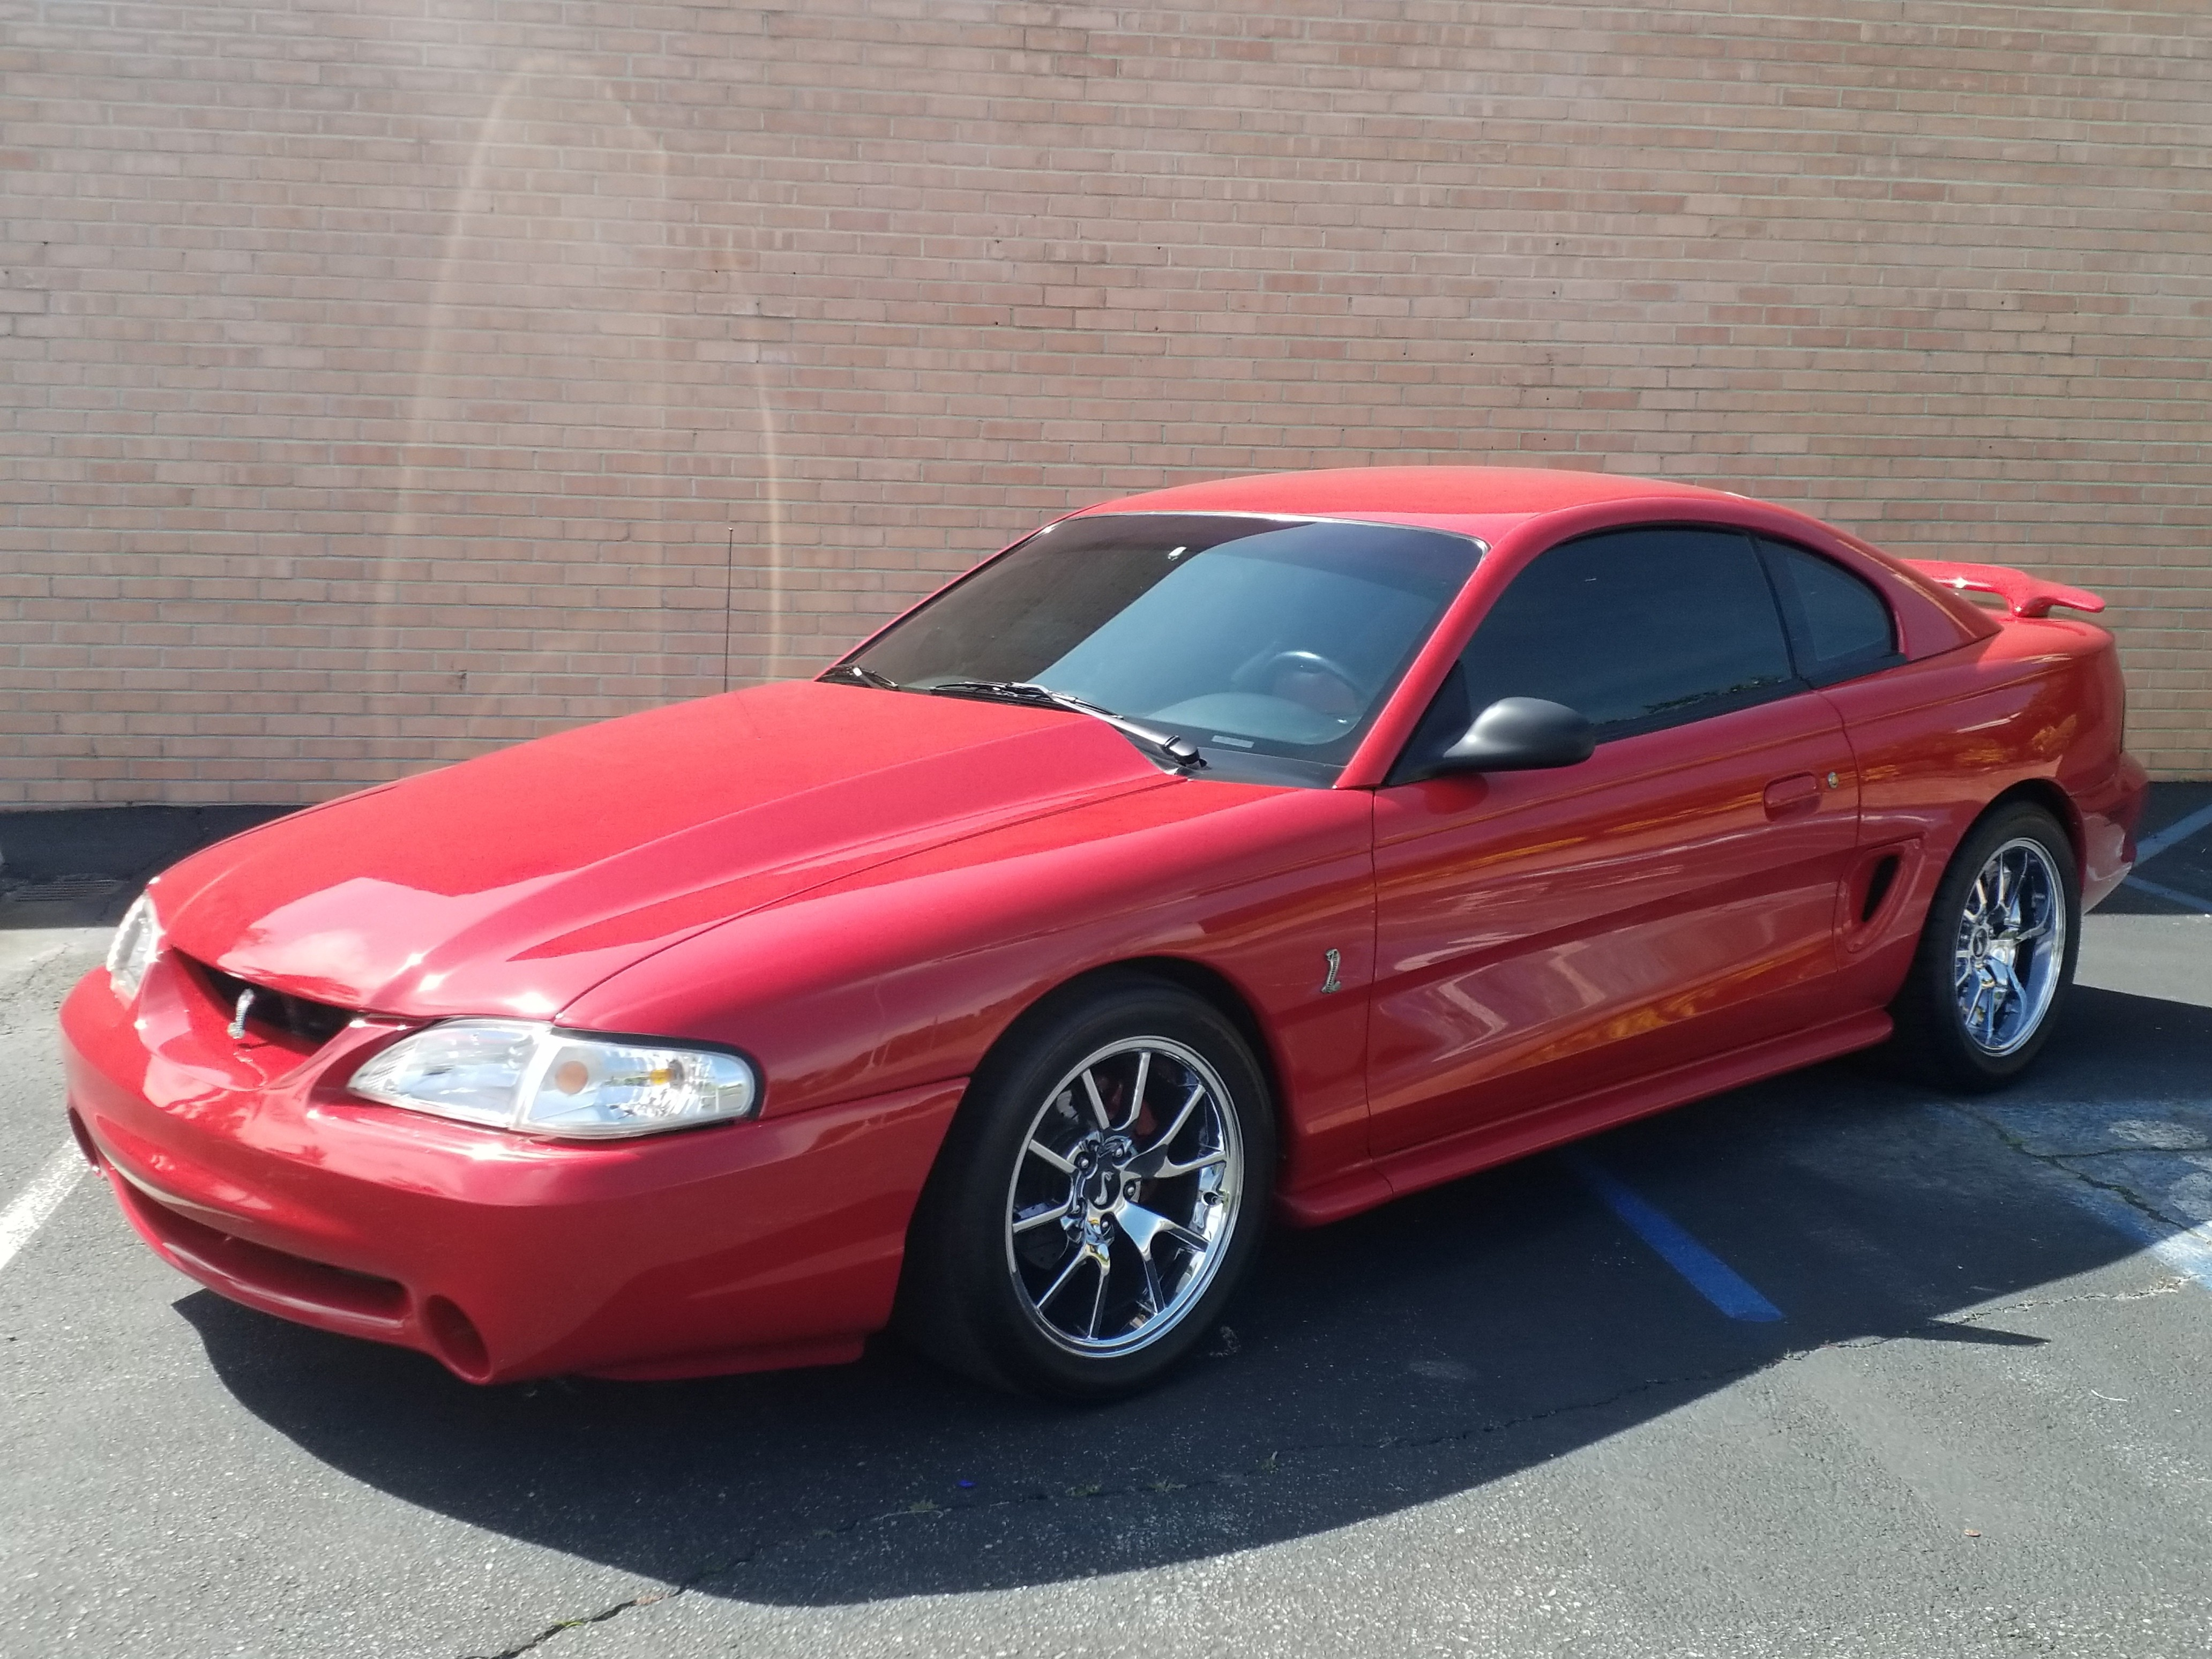 Used, 1994, Ford, MUSTANG COBRA MUST BE SOLD OUT OF STATE, Automobiles